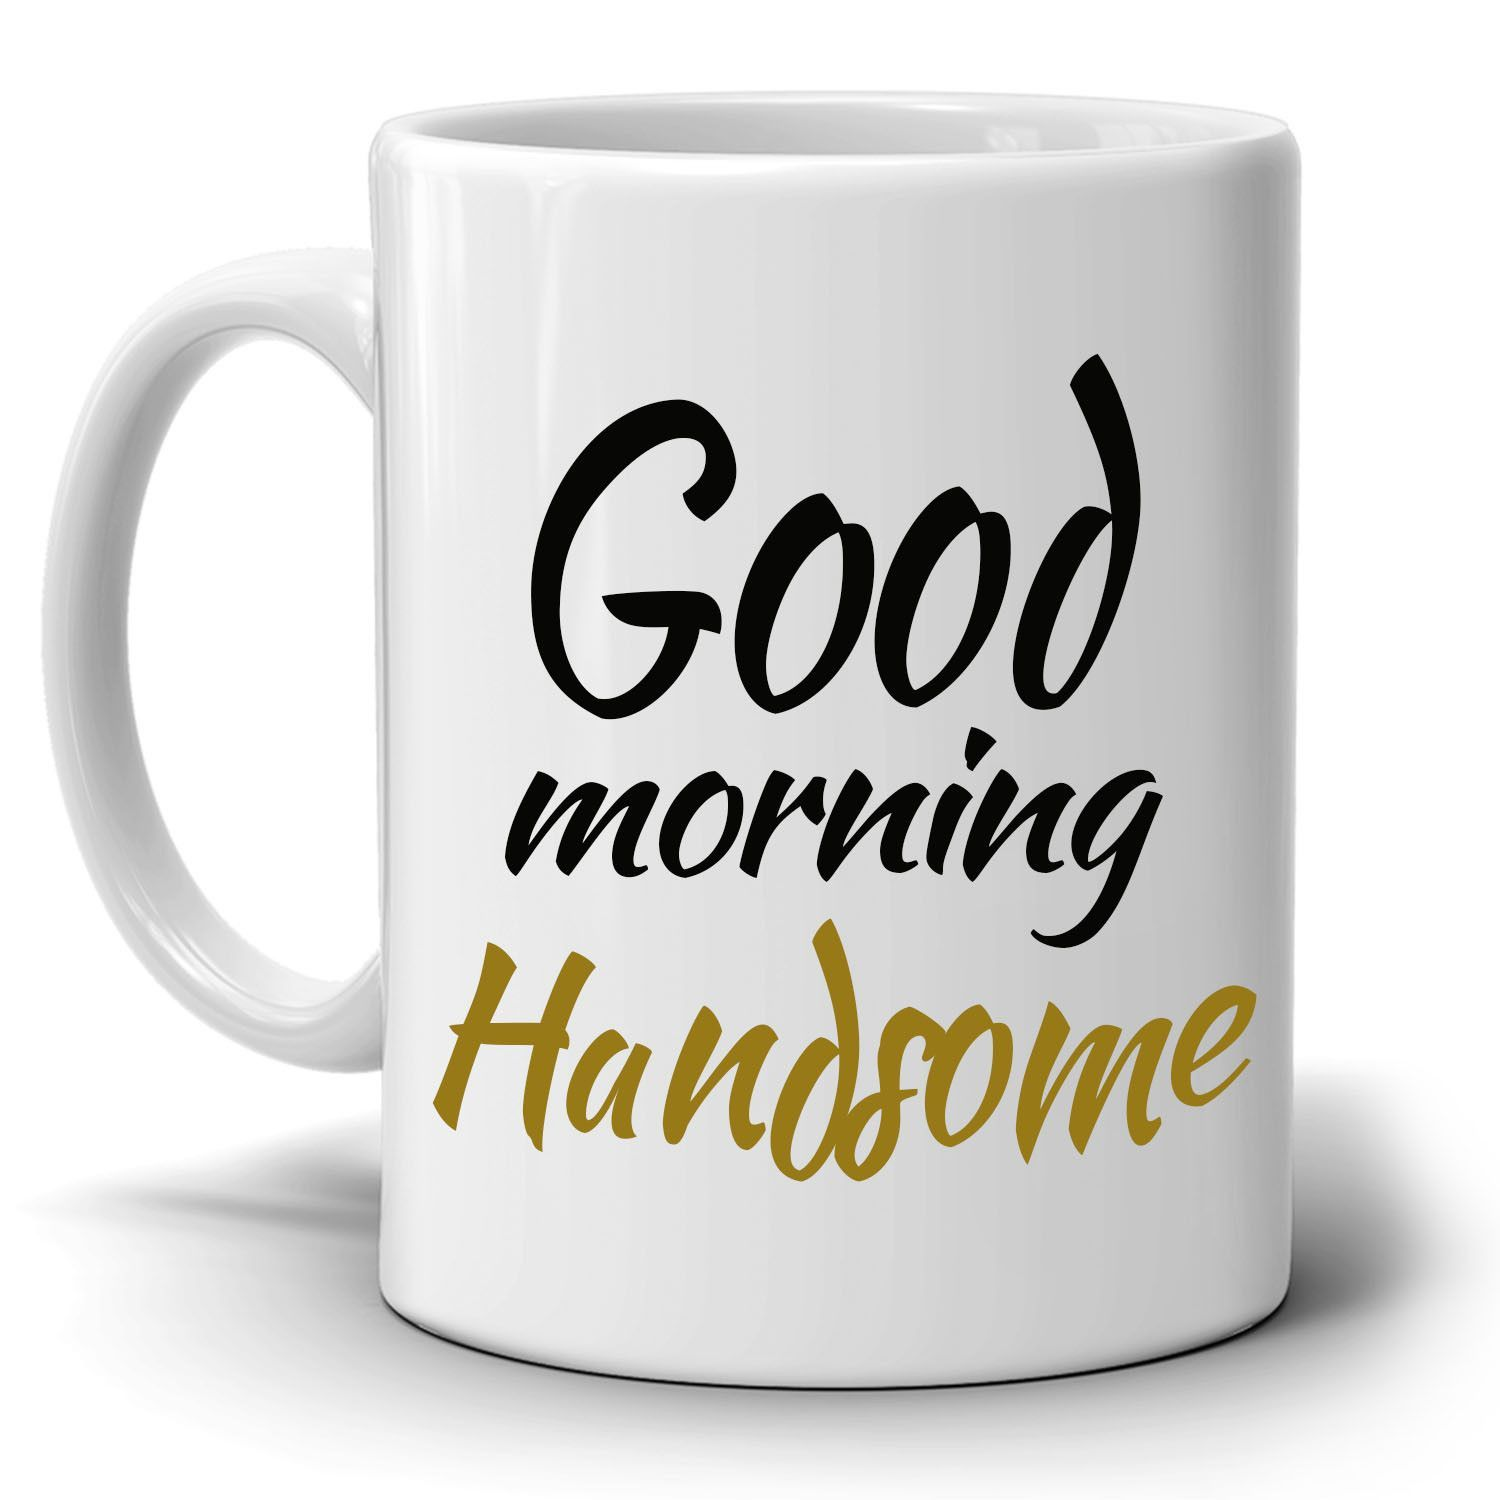 Good Morning Handsome and Beautiful Couples Coffee Mug Set